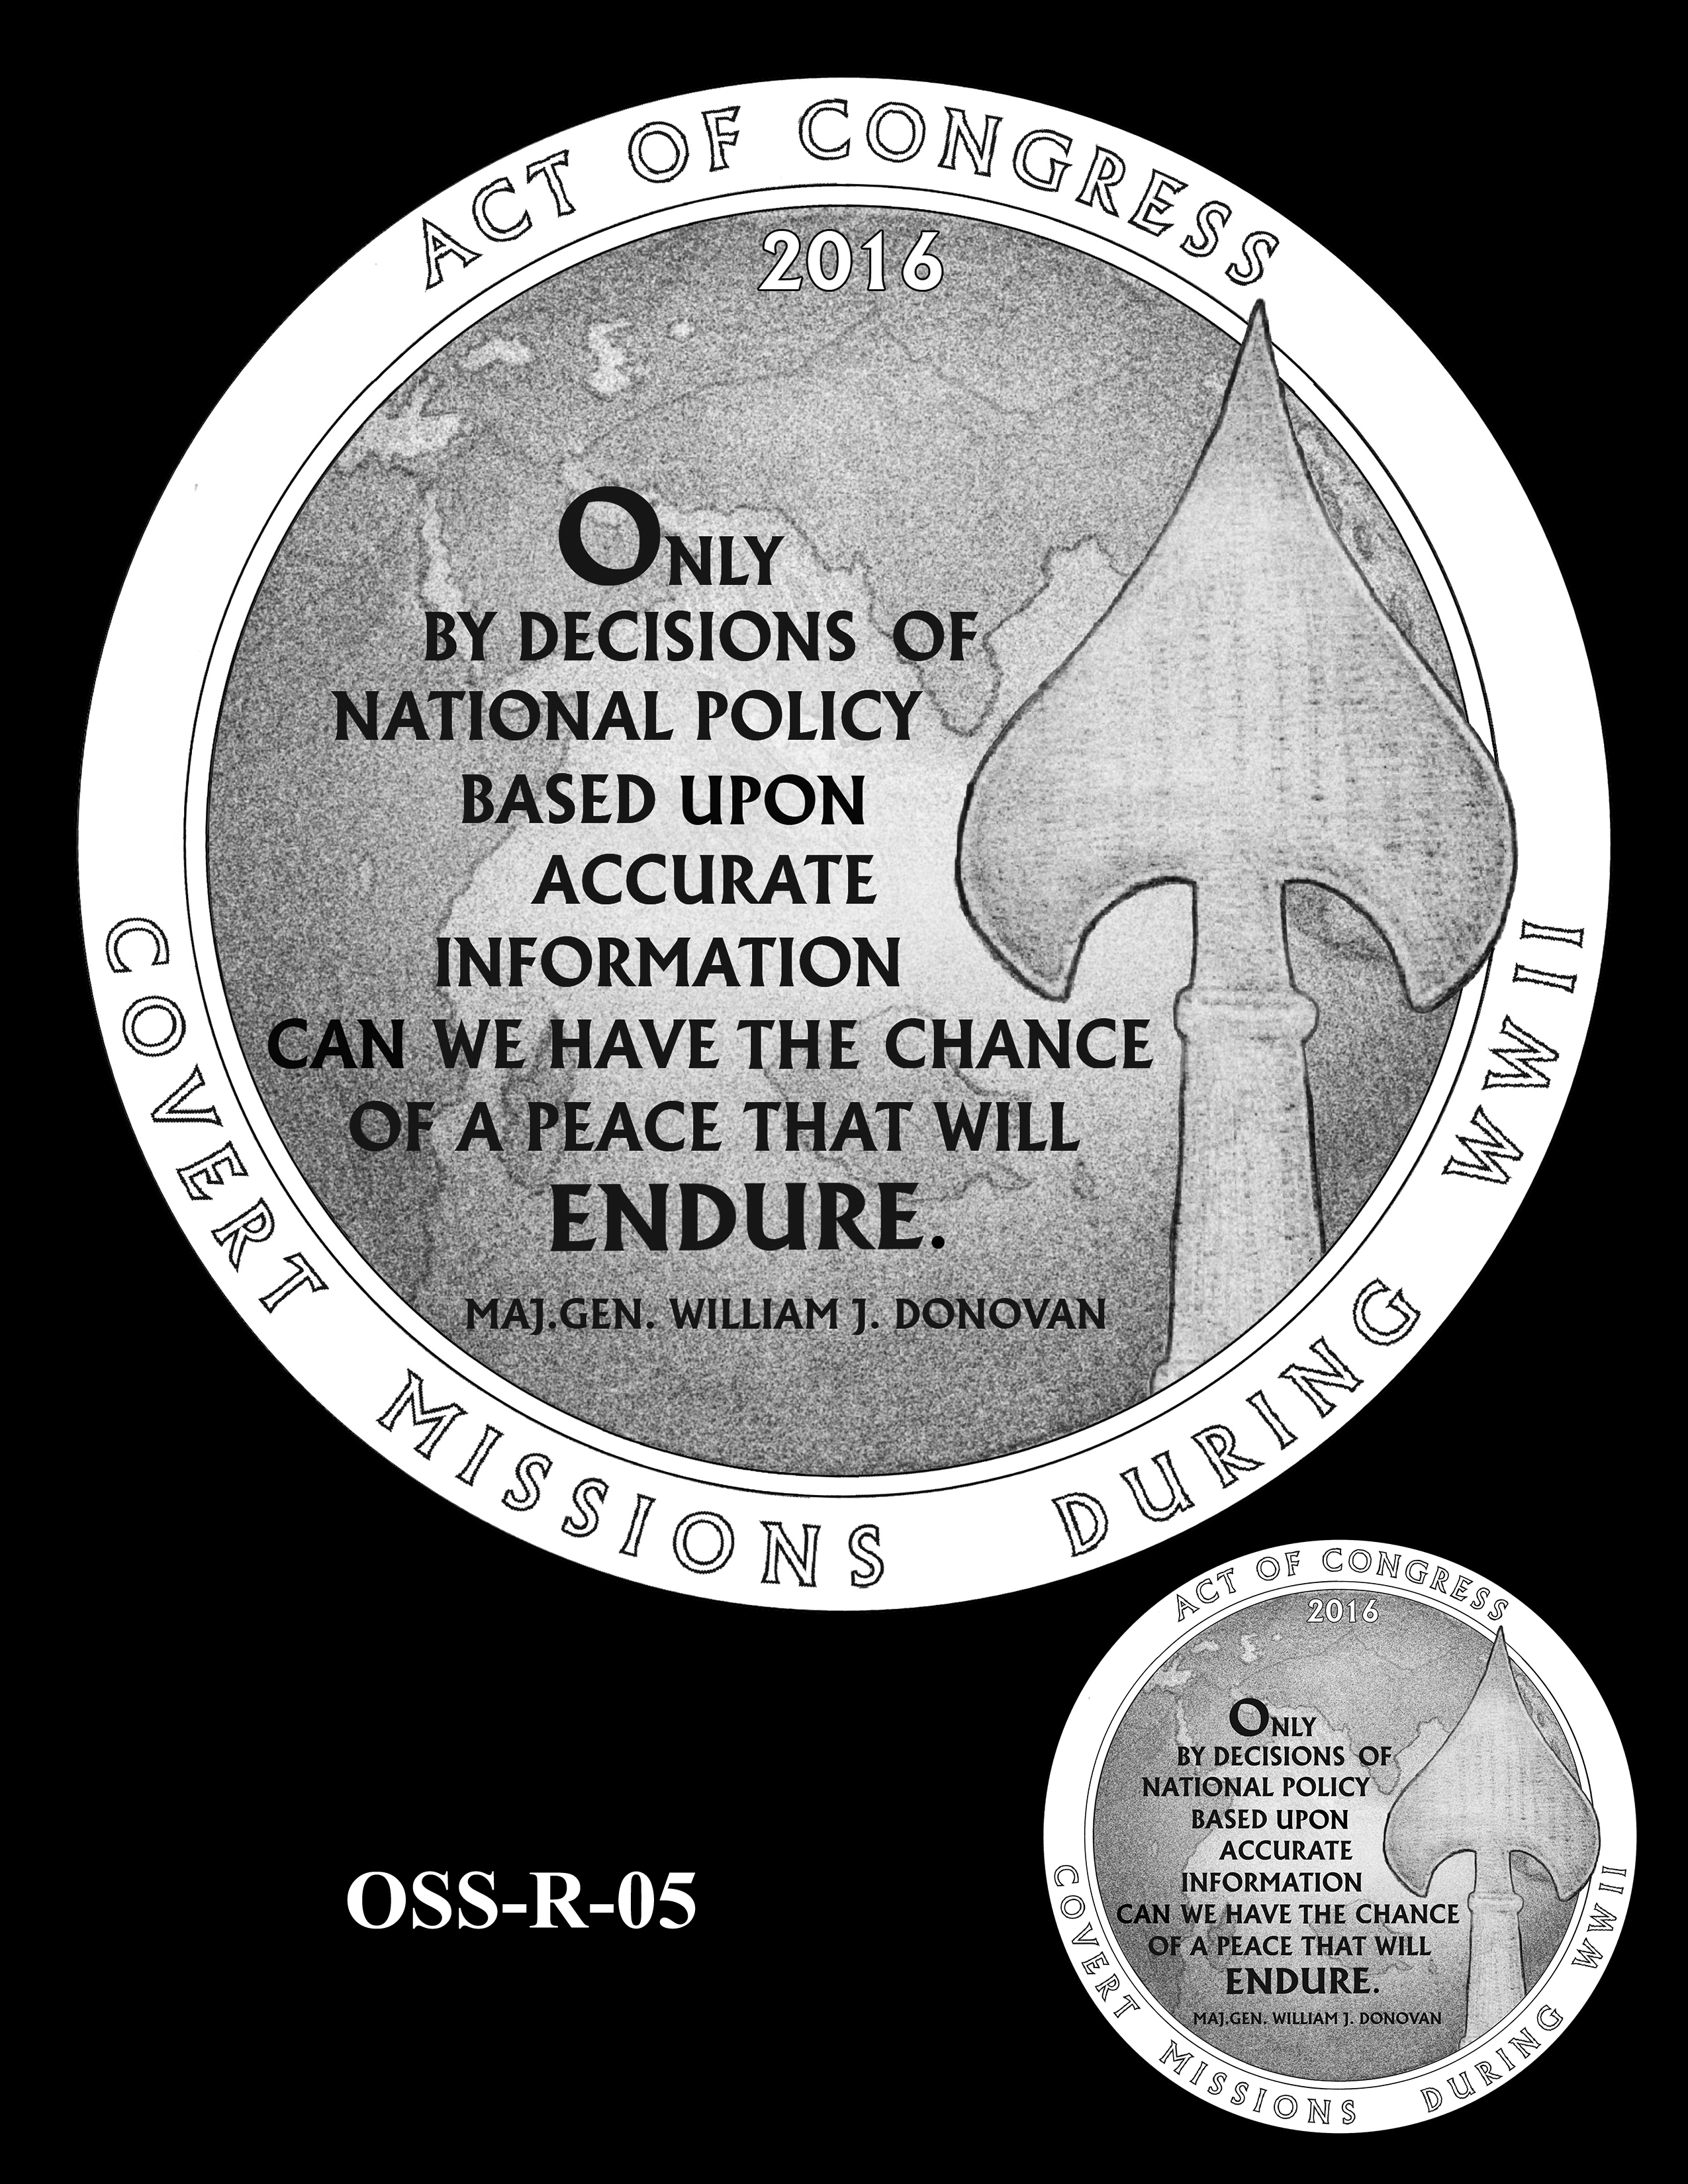 OSS-R-05 -- Office of Strategic Services Congressional Gold Medal